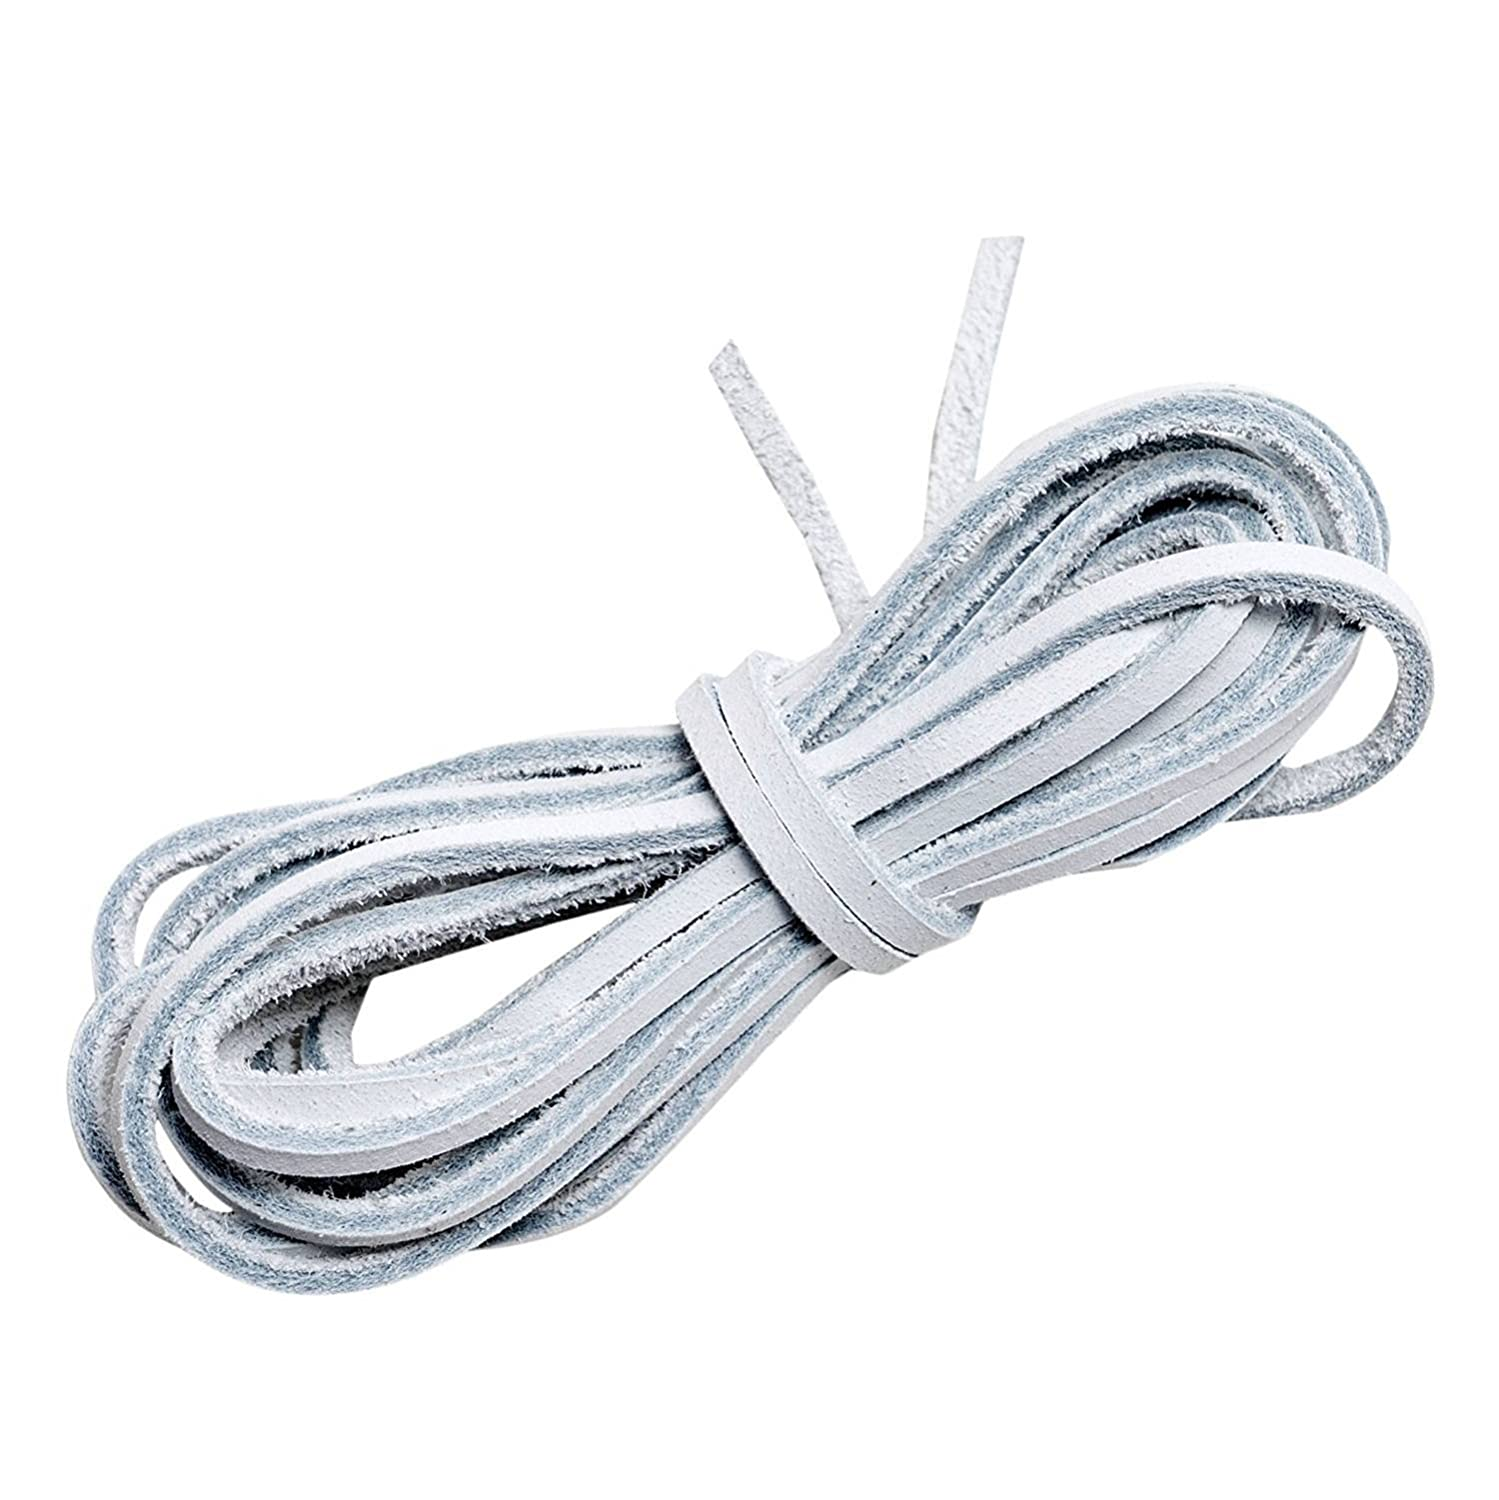 caf5a1047fde Lify Unisex White Leather Shoe Laces (80 cm)  Buy Online at Low Prices in  India - Amazon.in